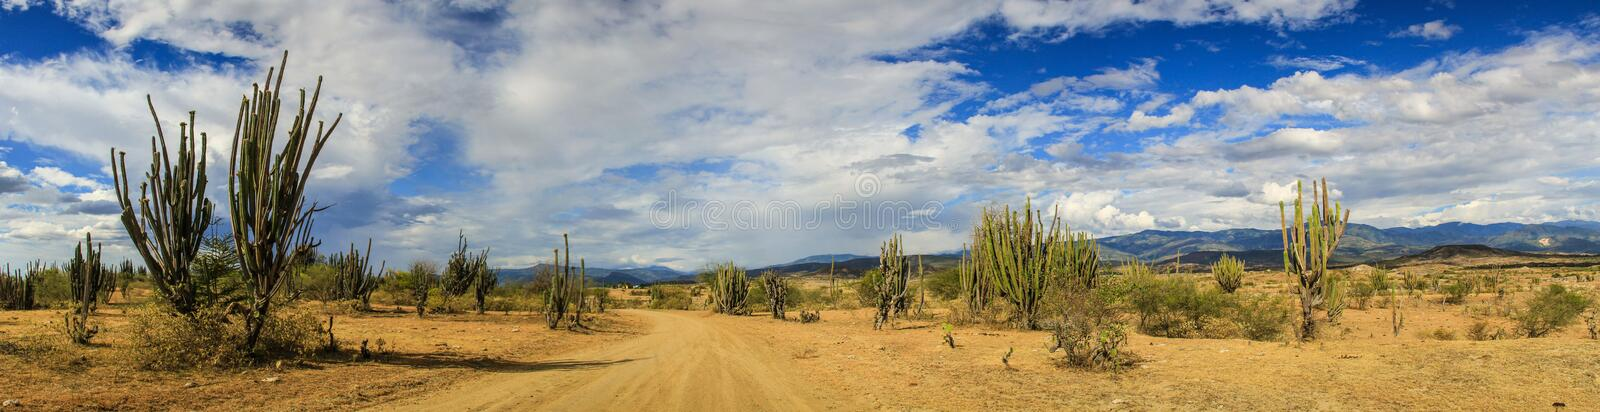 Download Panoramic View Of The Tatacoa Desert, Colombia Stock Photo - Image of second, desert: 69316402